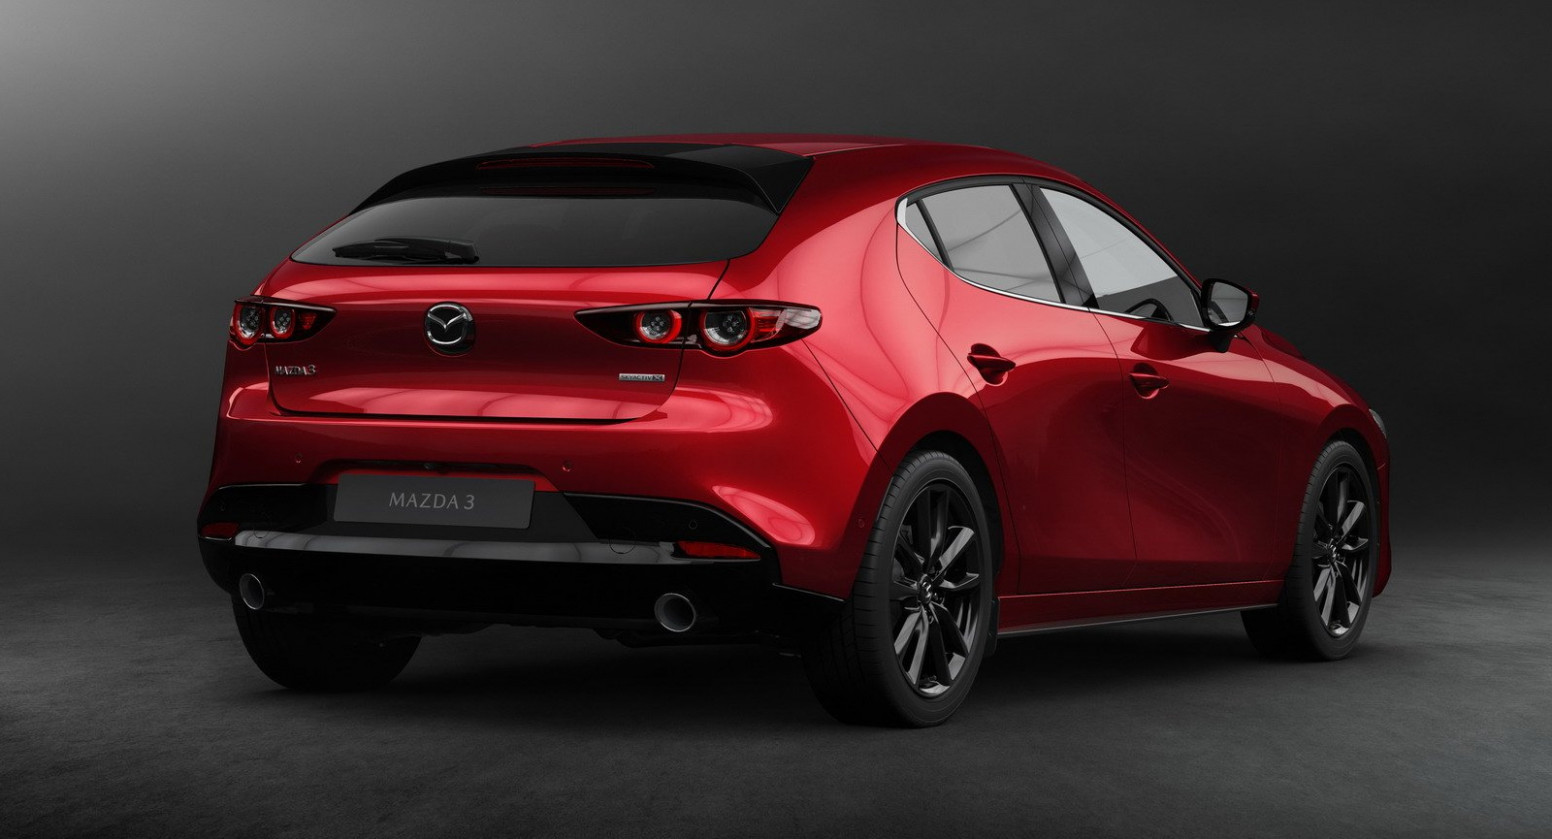 Mazda's 6 Electric Model Is Being Developed In-House | Carscoops